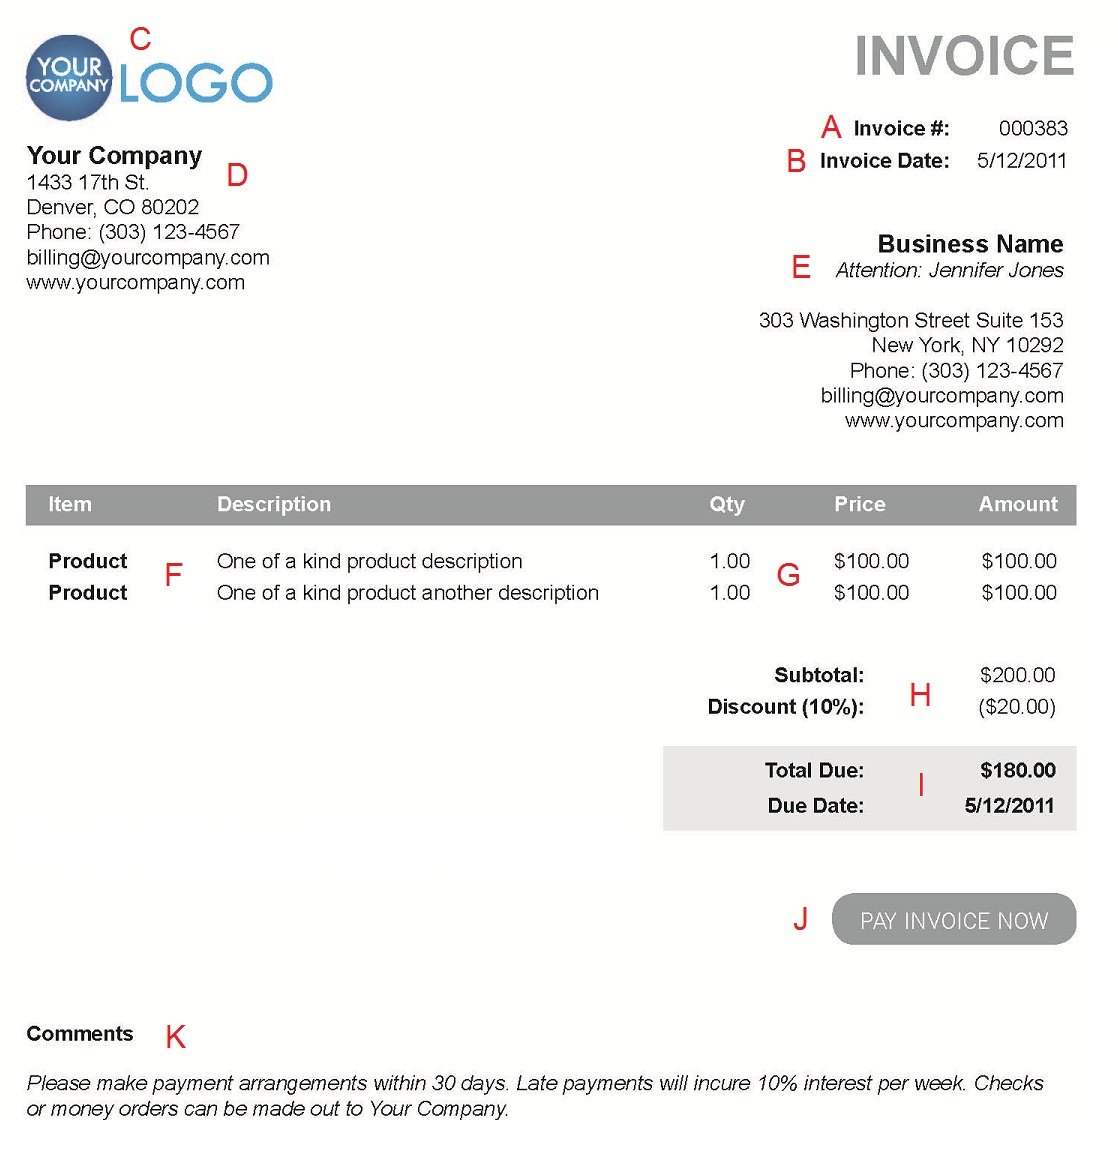 Opposenewapstandardsus  Surprising The  Different Sections Of An Electronic Payment Invoice With Interesting A  With Breathtaking Read Receipt Outlook  Mac Also Tax Receipt Canada In Addition Bbmp Tax Paid Receipt  And Generate Lic Receipt Online As Well As Being Payment Of In Receipt Additionally Eggnog Receipt From Paysimplecom With Opposenewapstandardsus  Interesting The  Different Sections Of An Electronic Payment Invoice With Breathtaking A  And Surprising Read Receipt Outlook  Mac Also Tax Receipt Canada In Addition Bbmp Tax Paid Receipt  From Paysimplecom